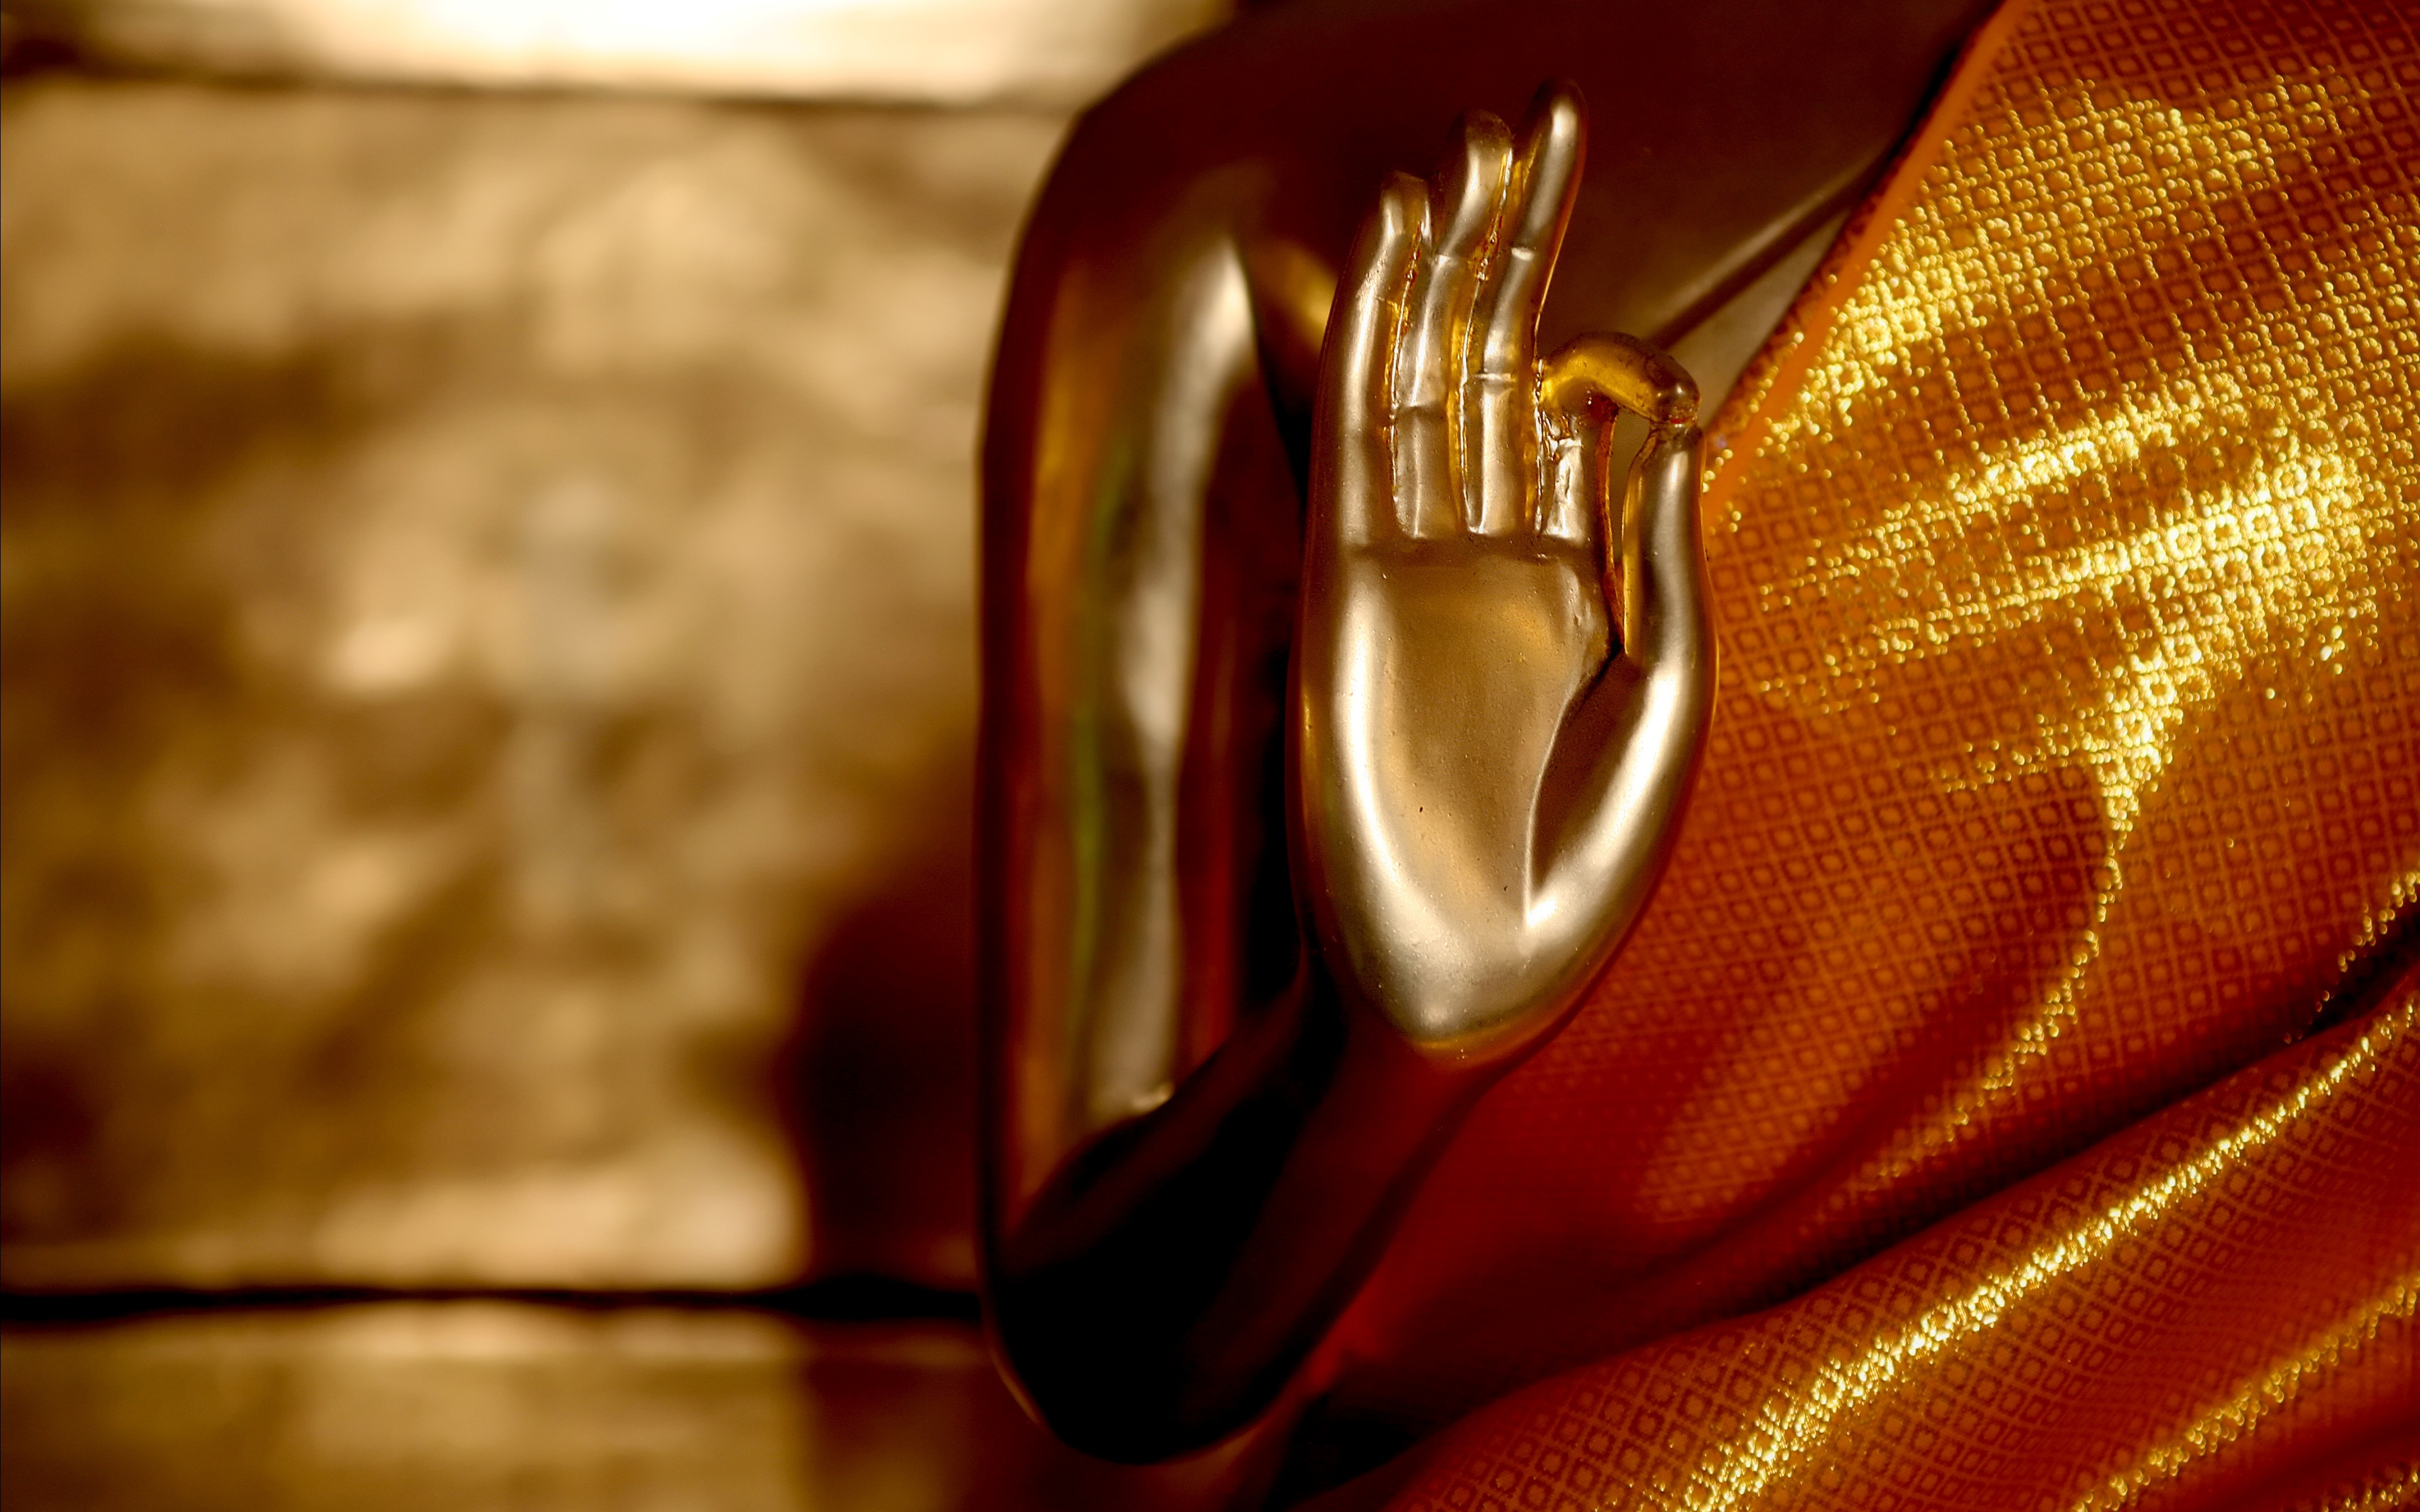 The Golden Light Of The Gautama Buddha